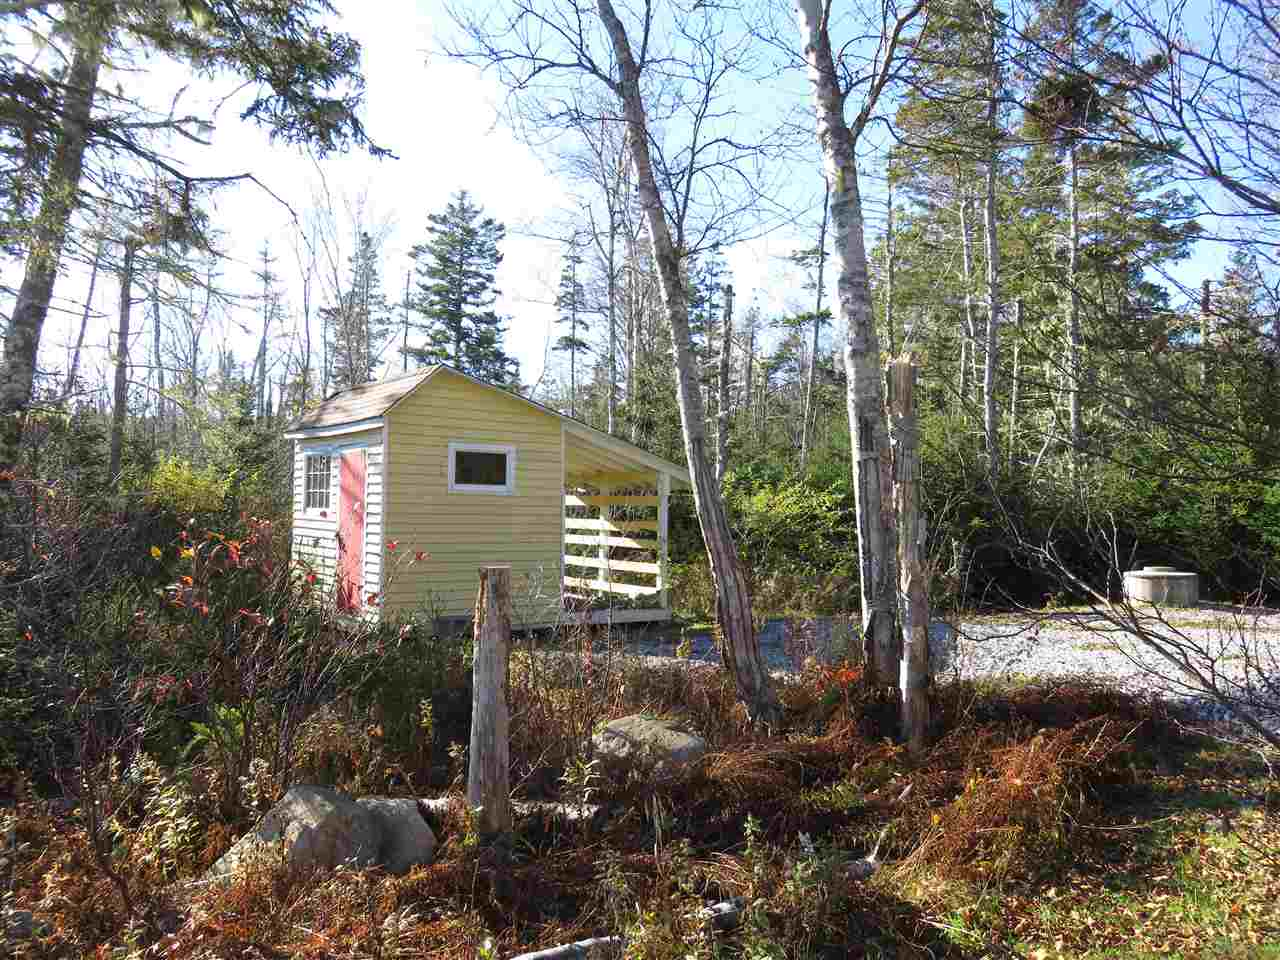 Photo 6: Photos: 783 WEST GREEN HARBOUR Road in West Green Harbour: 407-Shelburne County Residential for sale (South Shore)  : MLS® # 201701314